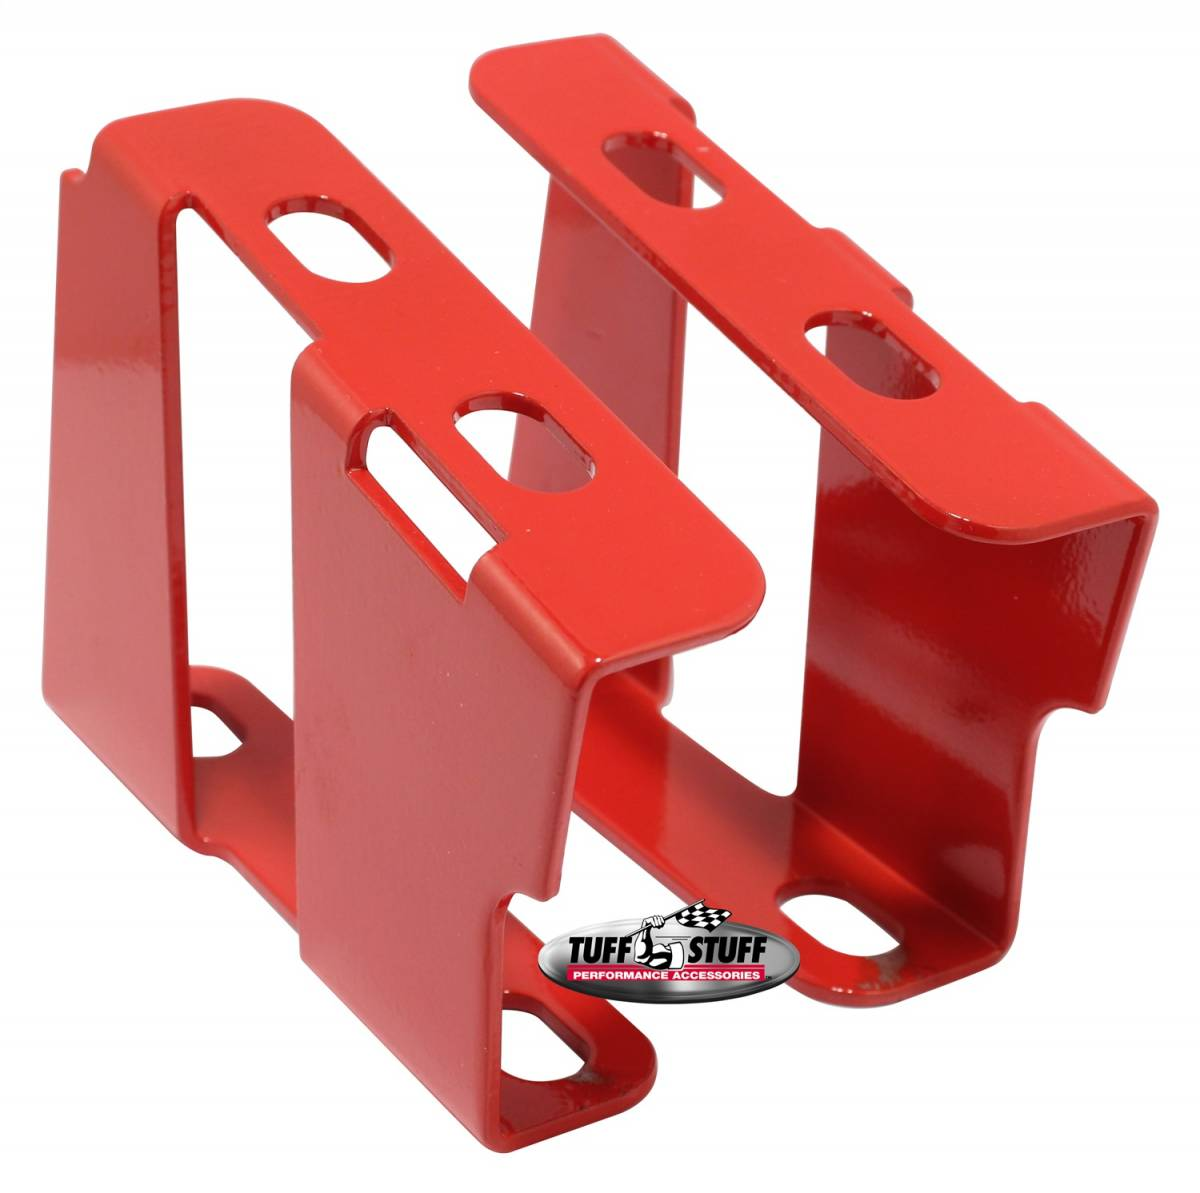 Tuff Stuff Performance - Brake Booster Brackets Incl. Left And Right Side 1955-1964 GM For Brake Booster PN[2121/2122/2123/2124/2221/2222/2223/2228/2229/2231] Red Powdercoat 4651BRED